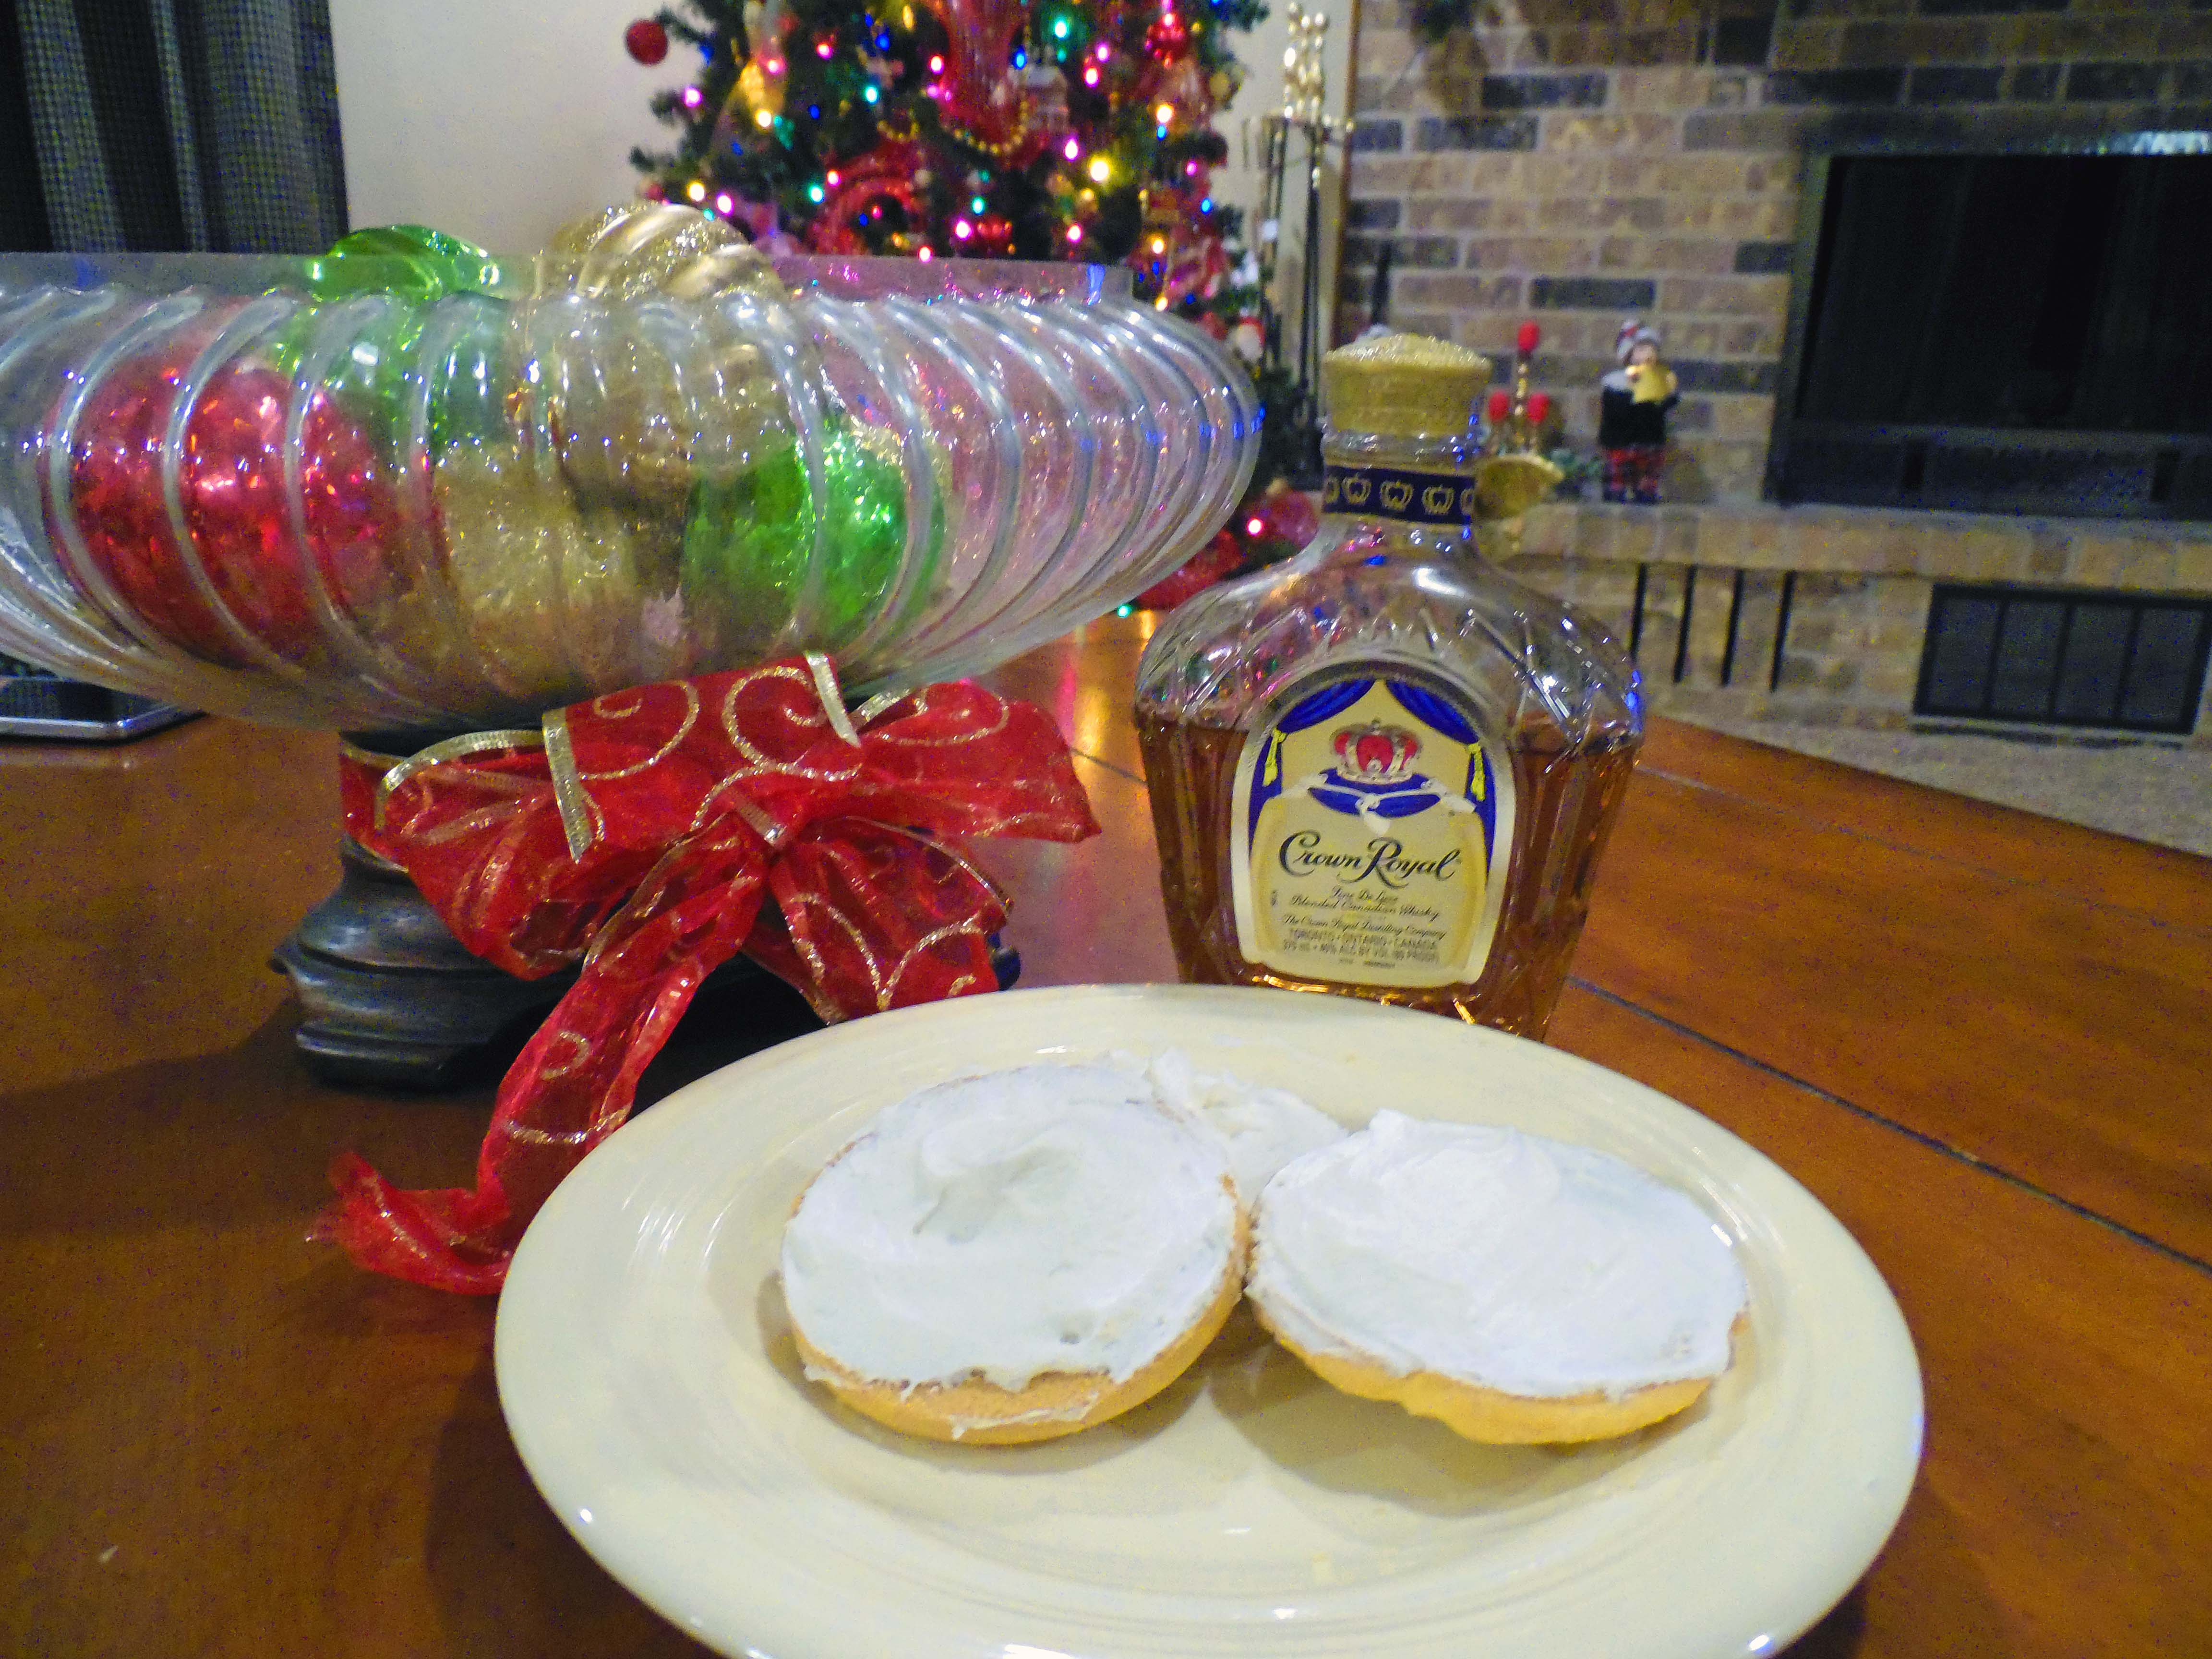 The spice up your life crown royal cookie recipe hedonist the spice up your life crown royal cookie recipe forumfinder Images